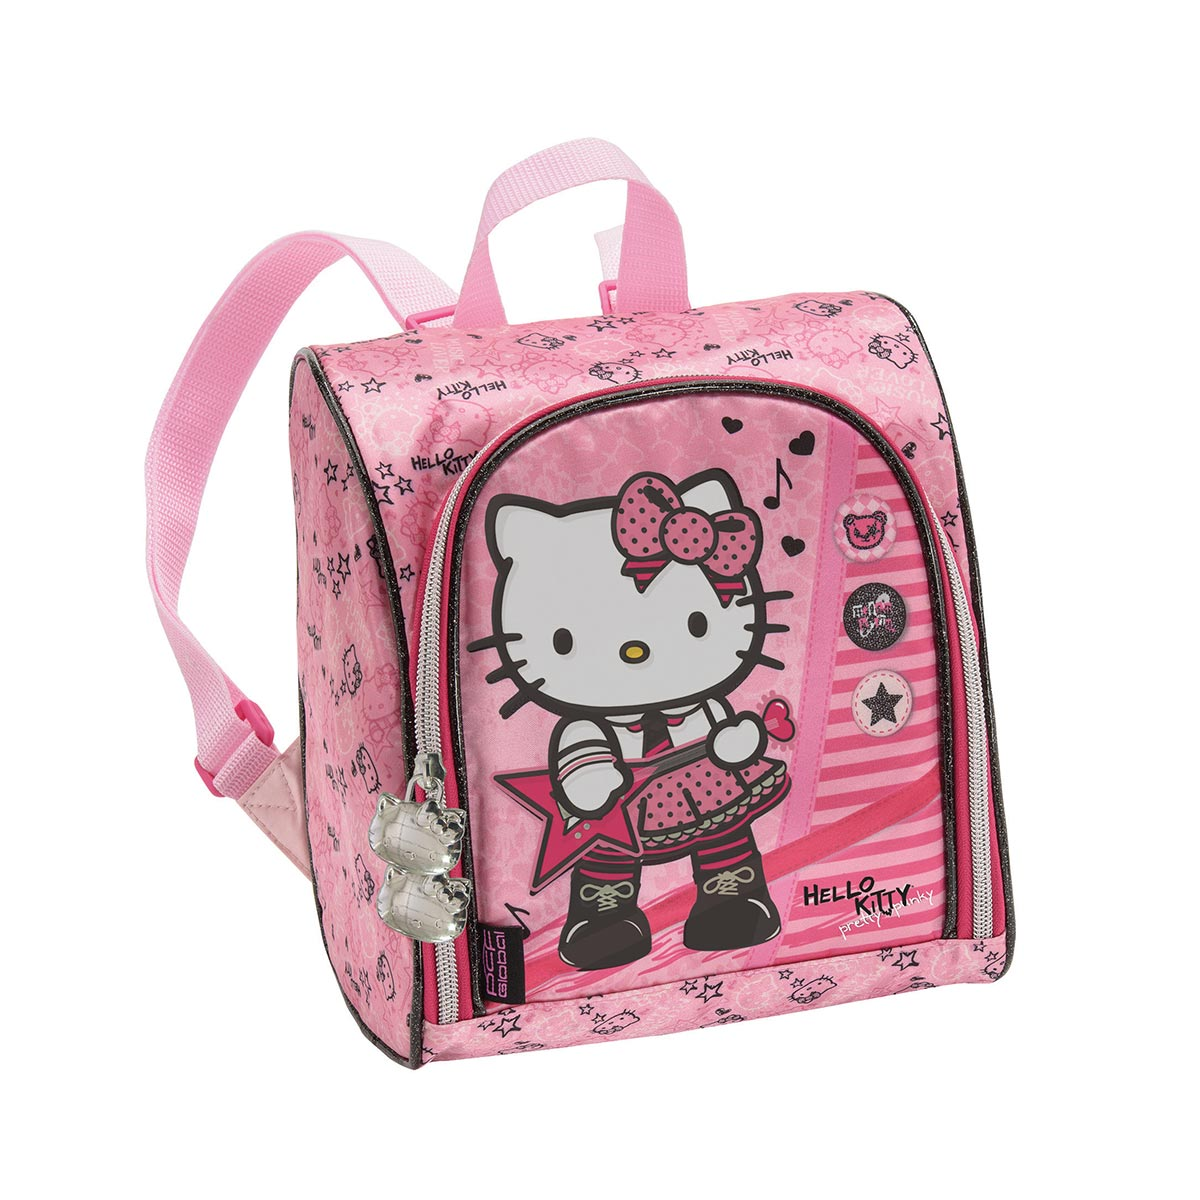 Lancheira Hello Kitty Pretty Rock 924M09